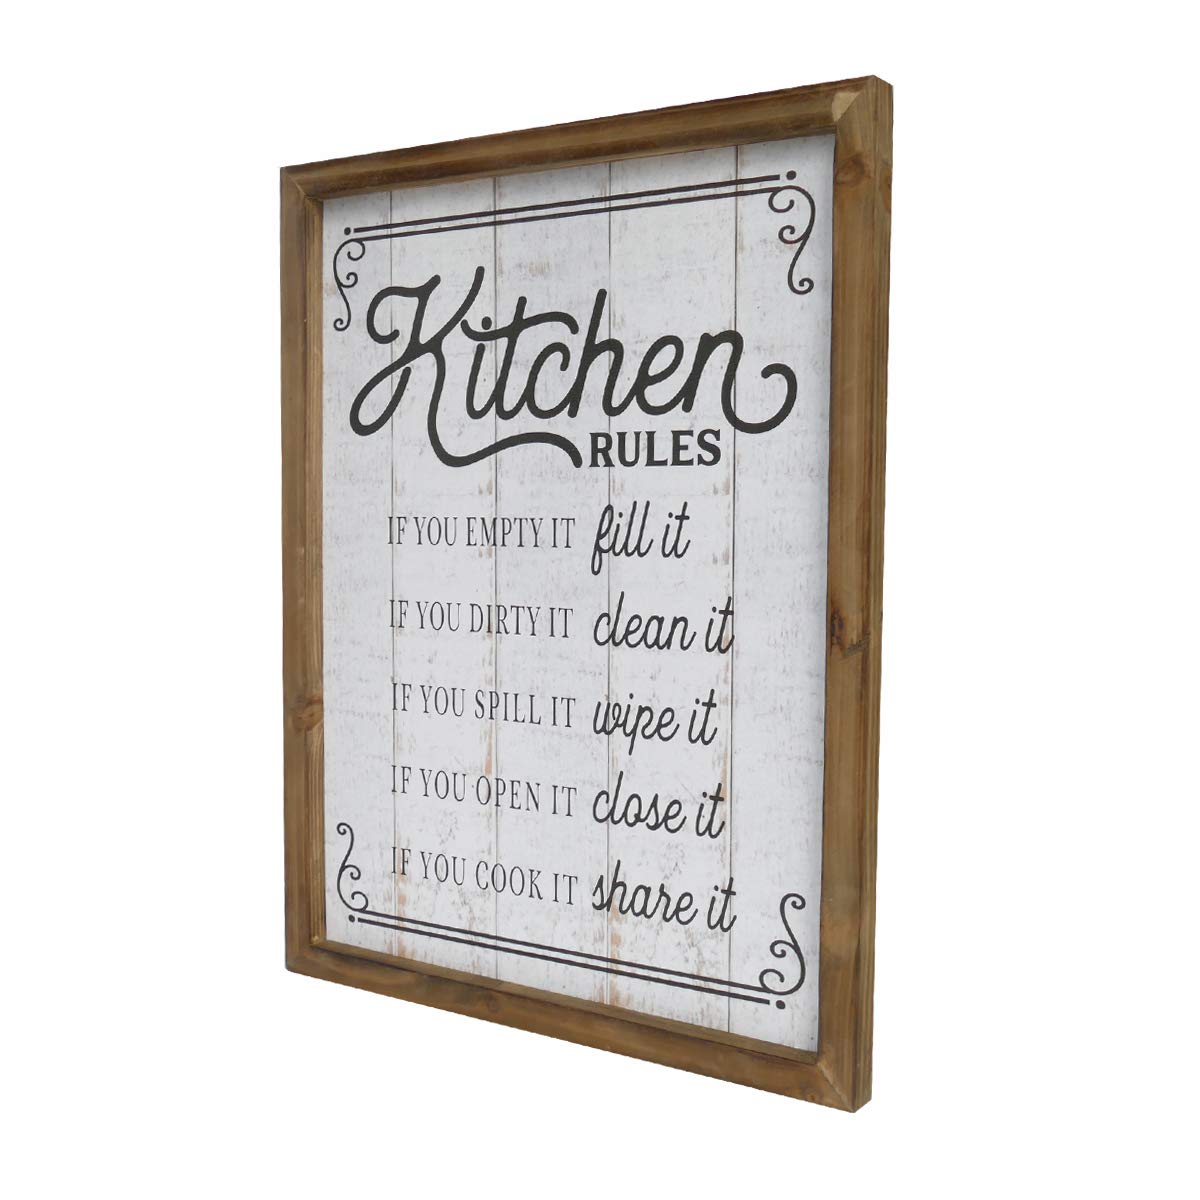 NIKKY HOME 18 x 14 Rustic Wood Framed Kitchen Rules Wall Plaque